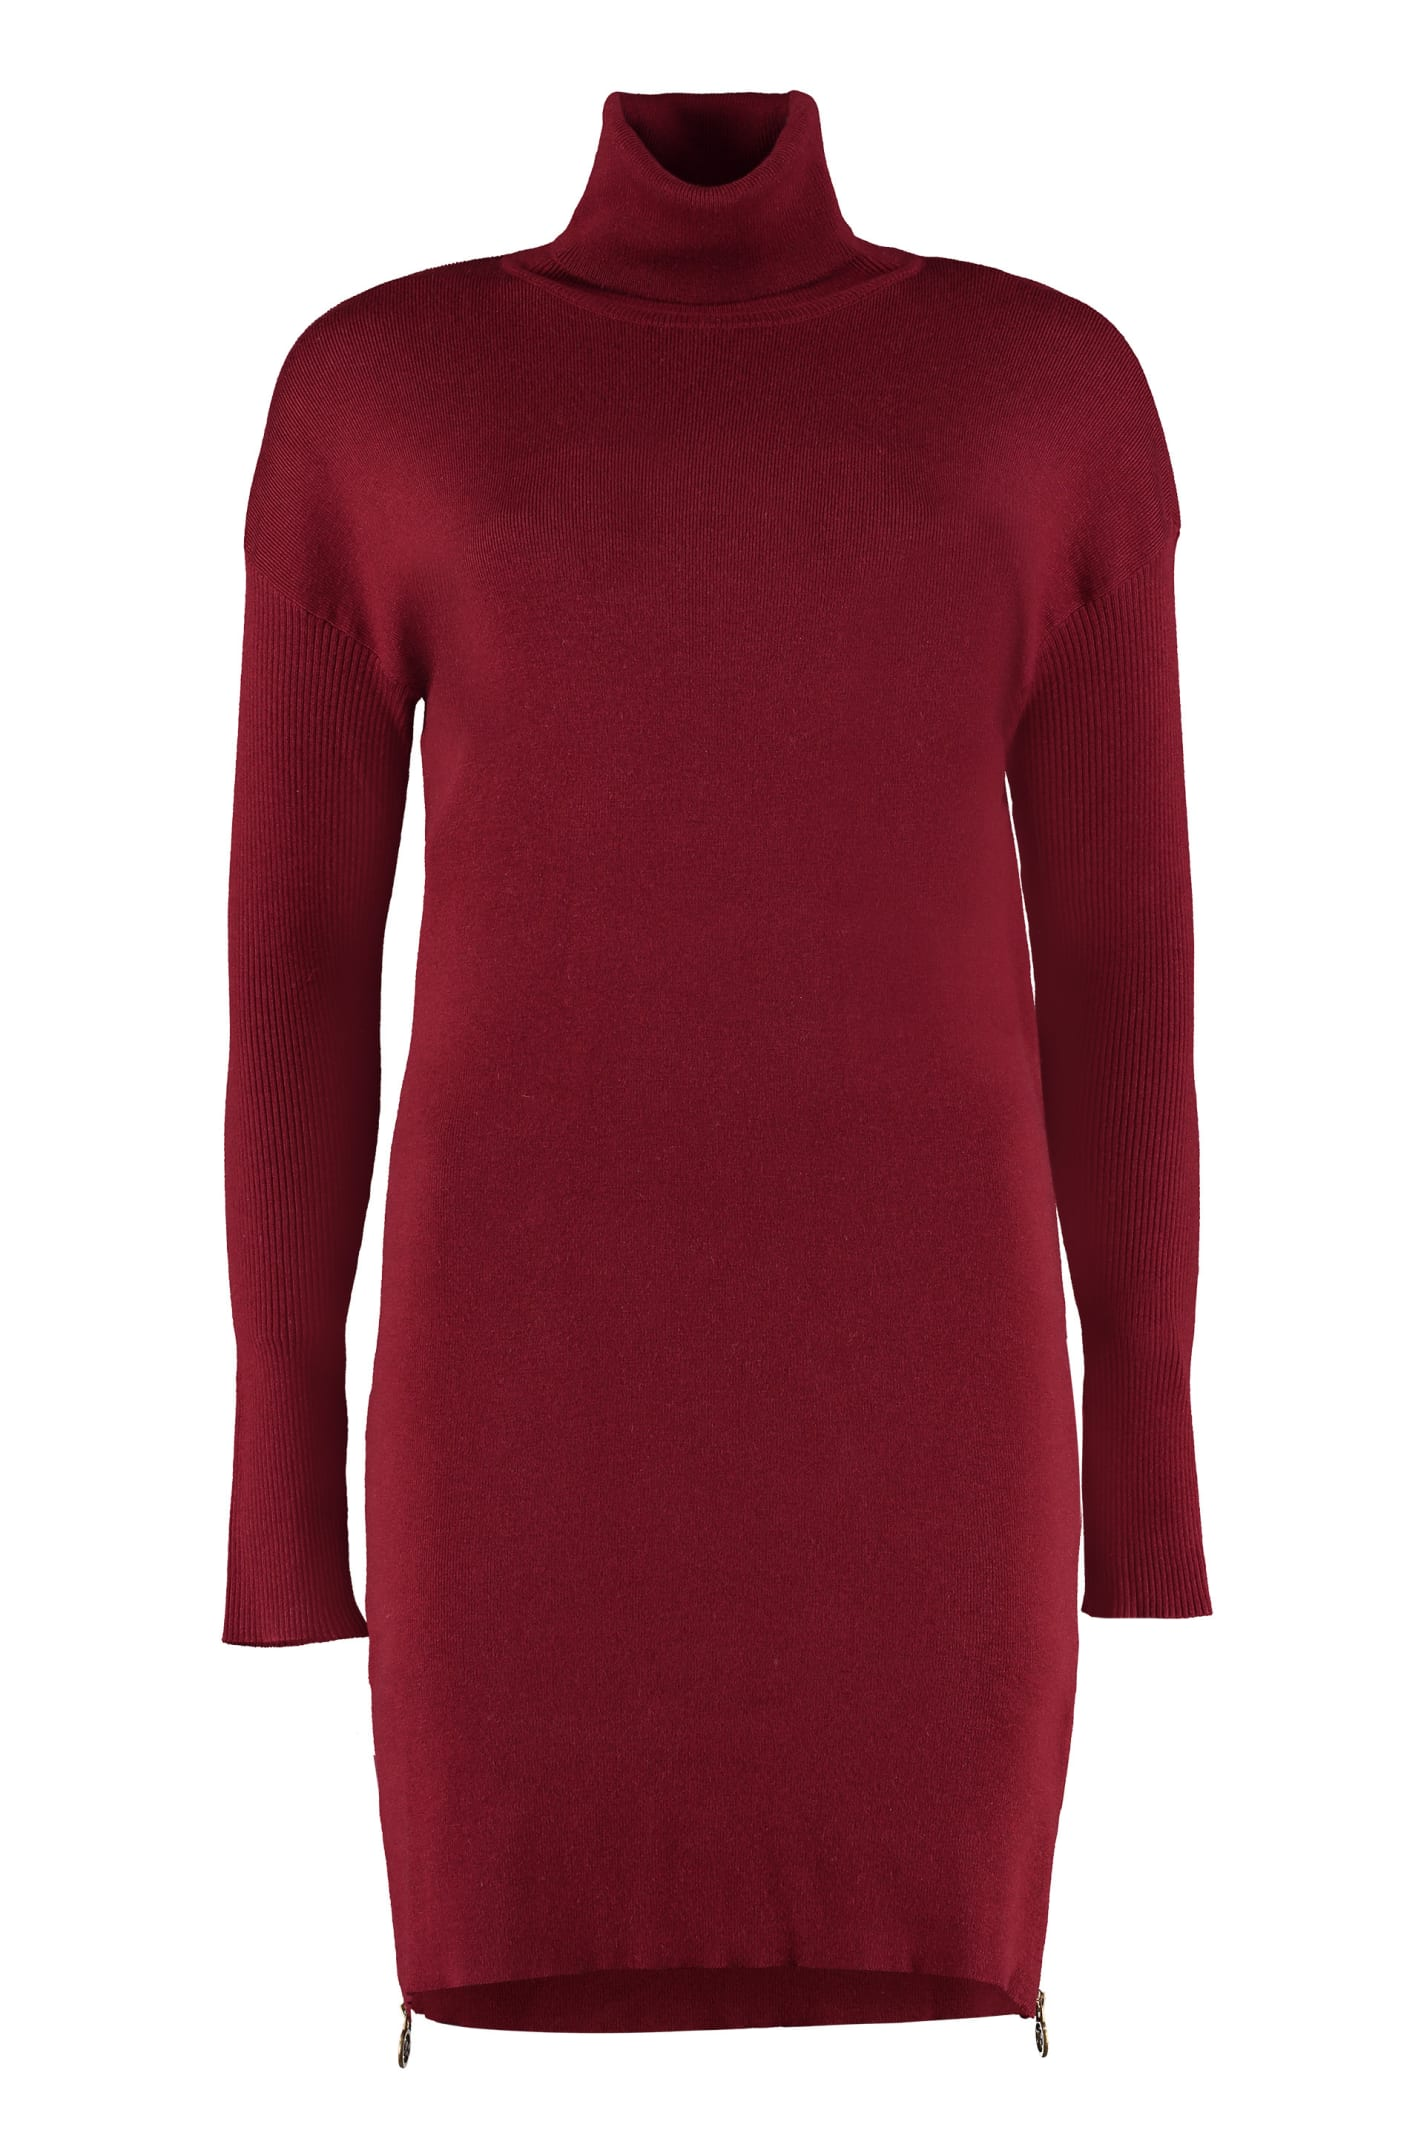 Buy MICHAEL Michael Kors Knitted Turtleneck Dress online, shop MICHAEL Michael Kors with free shipping